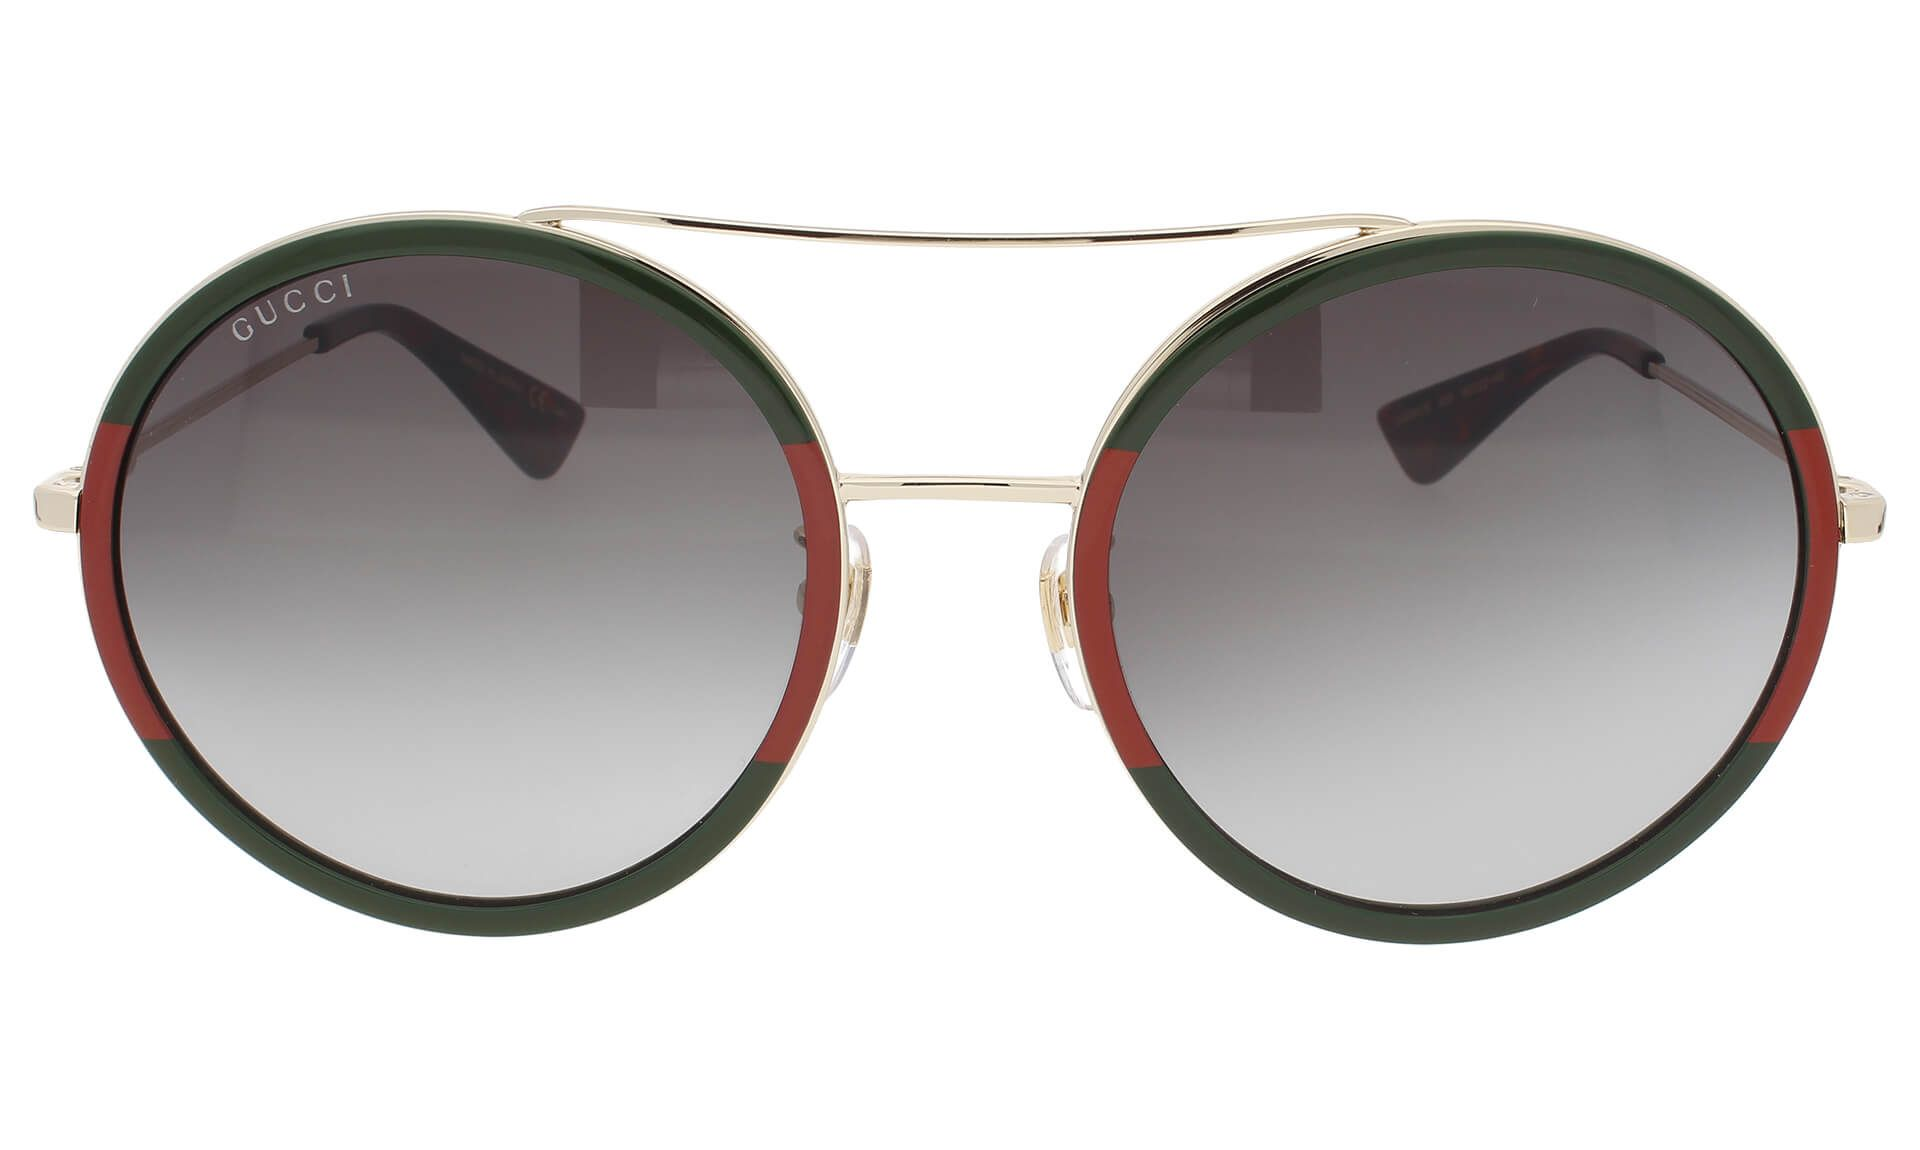 9cd811d6a01 Image result for Gucci GG0061S Sunglasses Gucci Eyewear